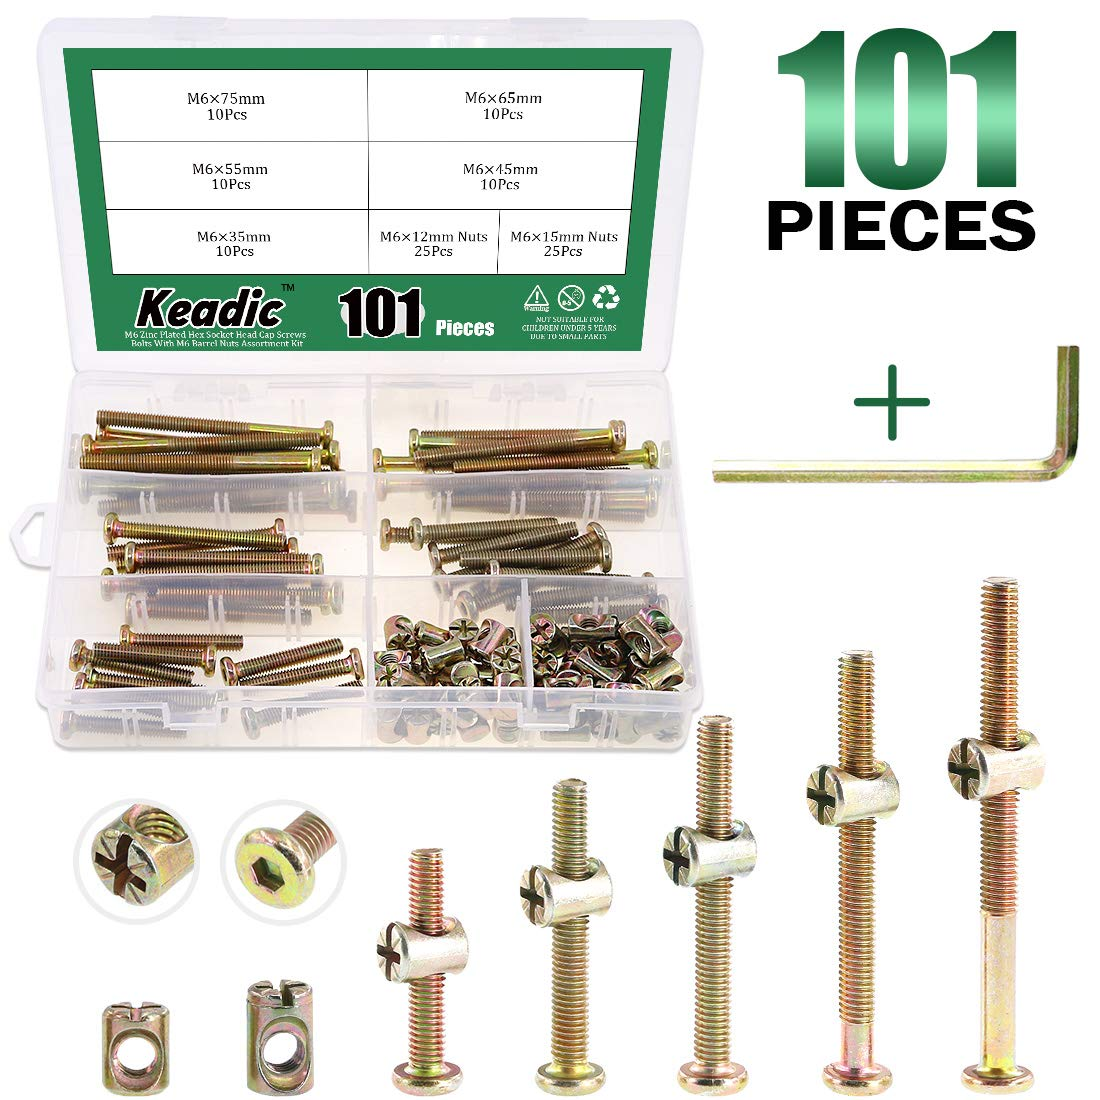 Keadic 100Pcs M6 Hex Socket Head Cap Screws Nuts, Zinc Plated Steel Barrel Bolt Nuts Hardware Replacement Kit for Furniture Cots Beds Crib, 1 Hex Key for Free - 35/45/55/65/75mm